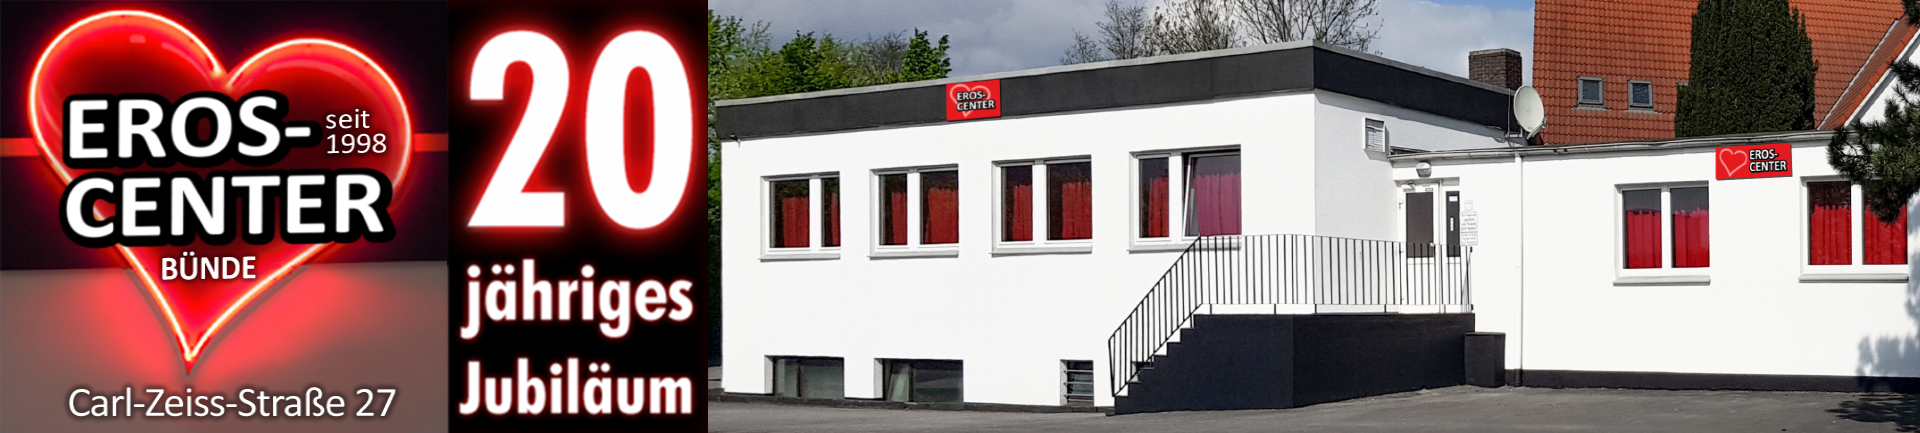 Eros Center Bünde